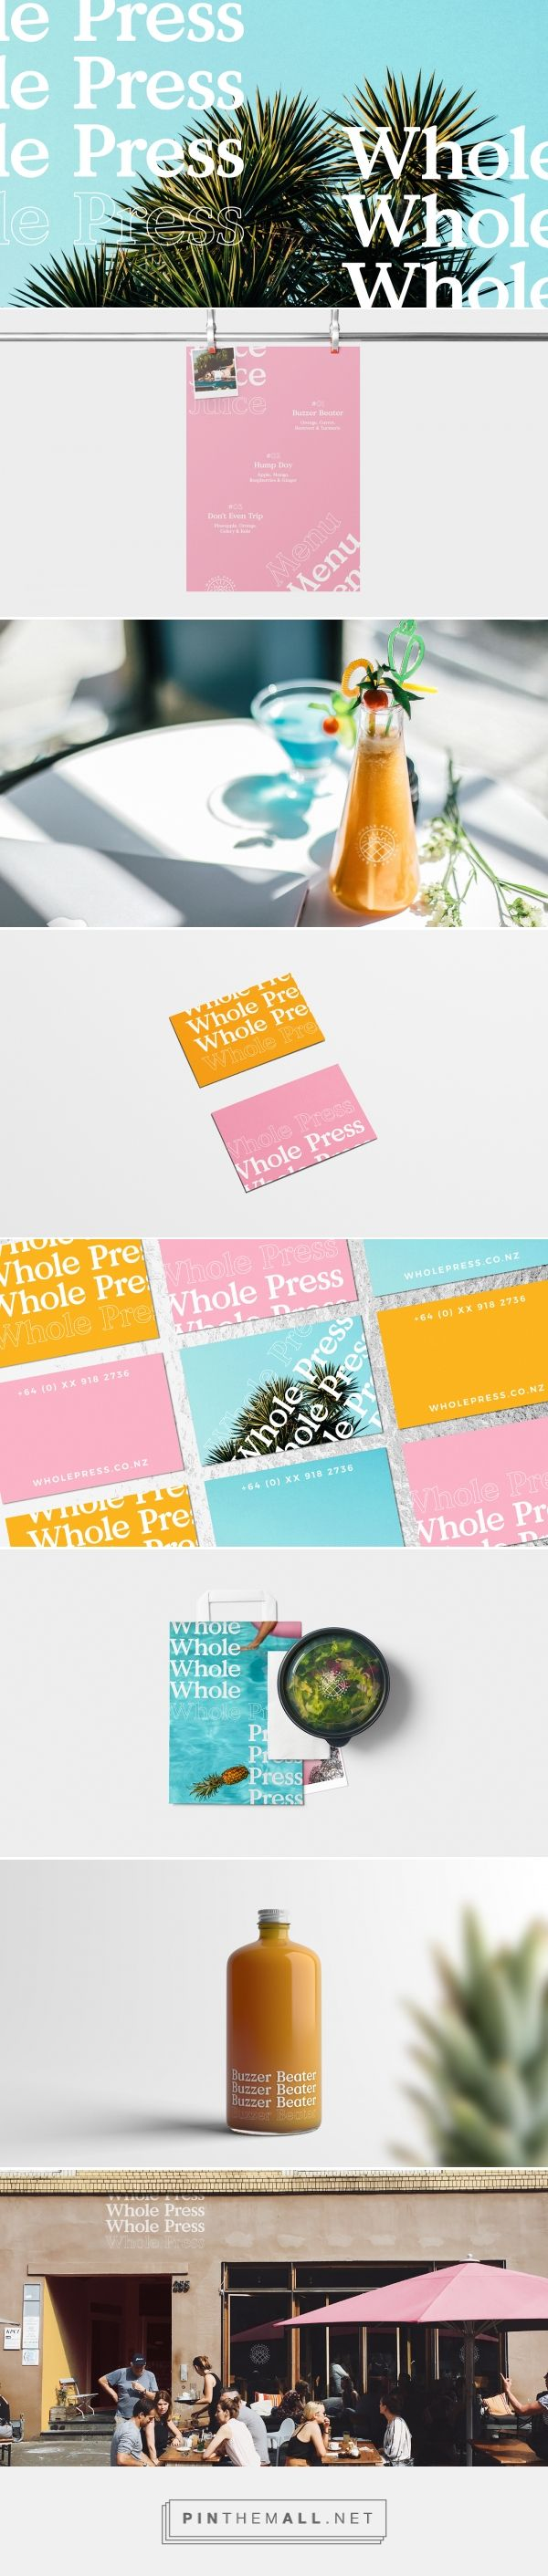 Whole Press Juice and Salad Company Branding by Elliott Stansfield | Fivestar Branding Agency – Design and Branding Agency & Curated Inspiration Gallery #branding #identity #design #designideas #designinspiration